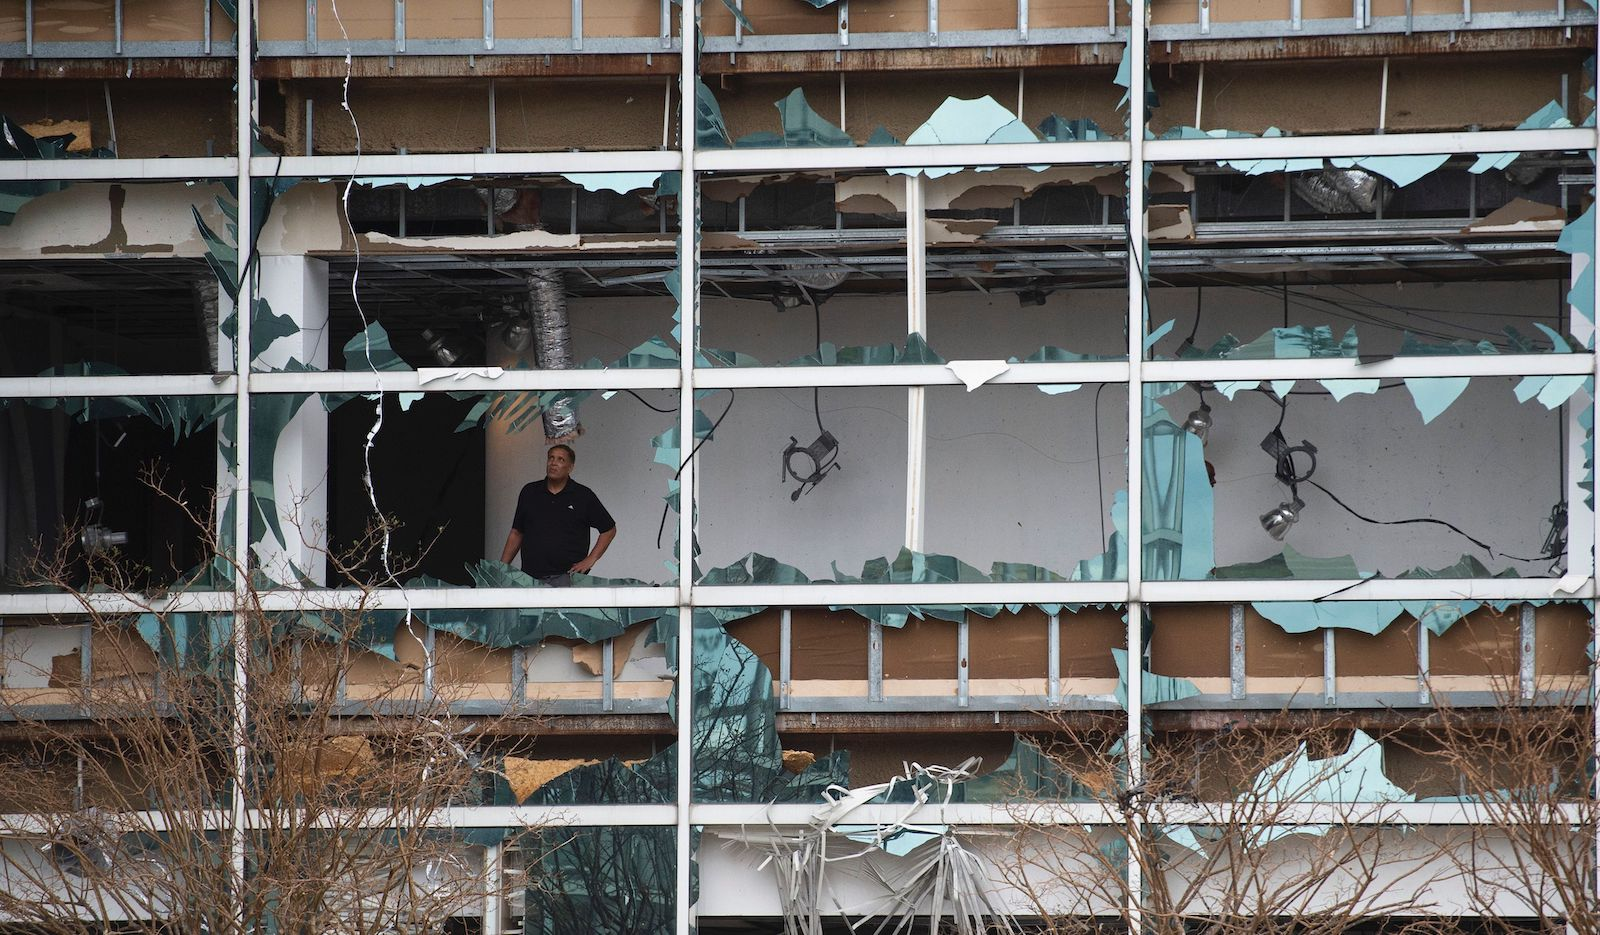 A man looks at damage inside the Capitol One Bank Tower, with its windows blown out in the downtown area after Hurricane Laura passed through